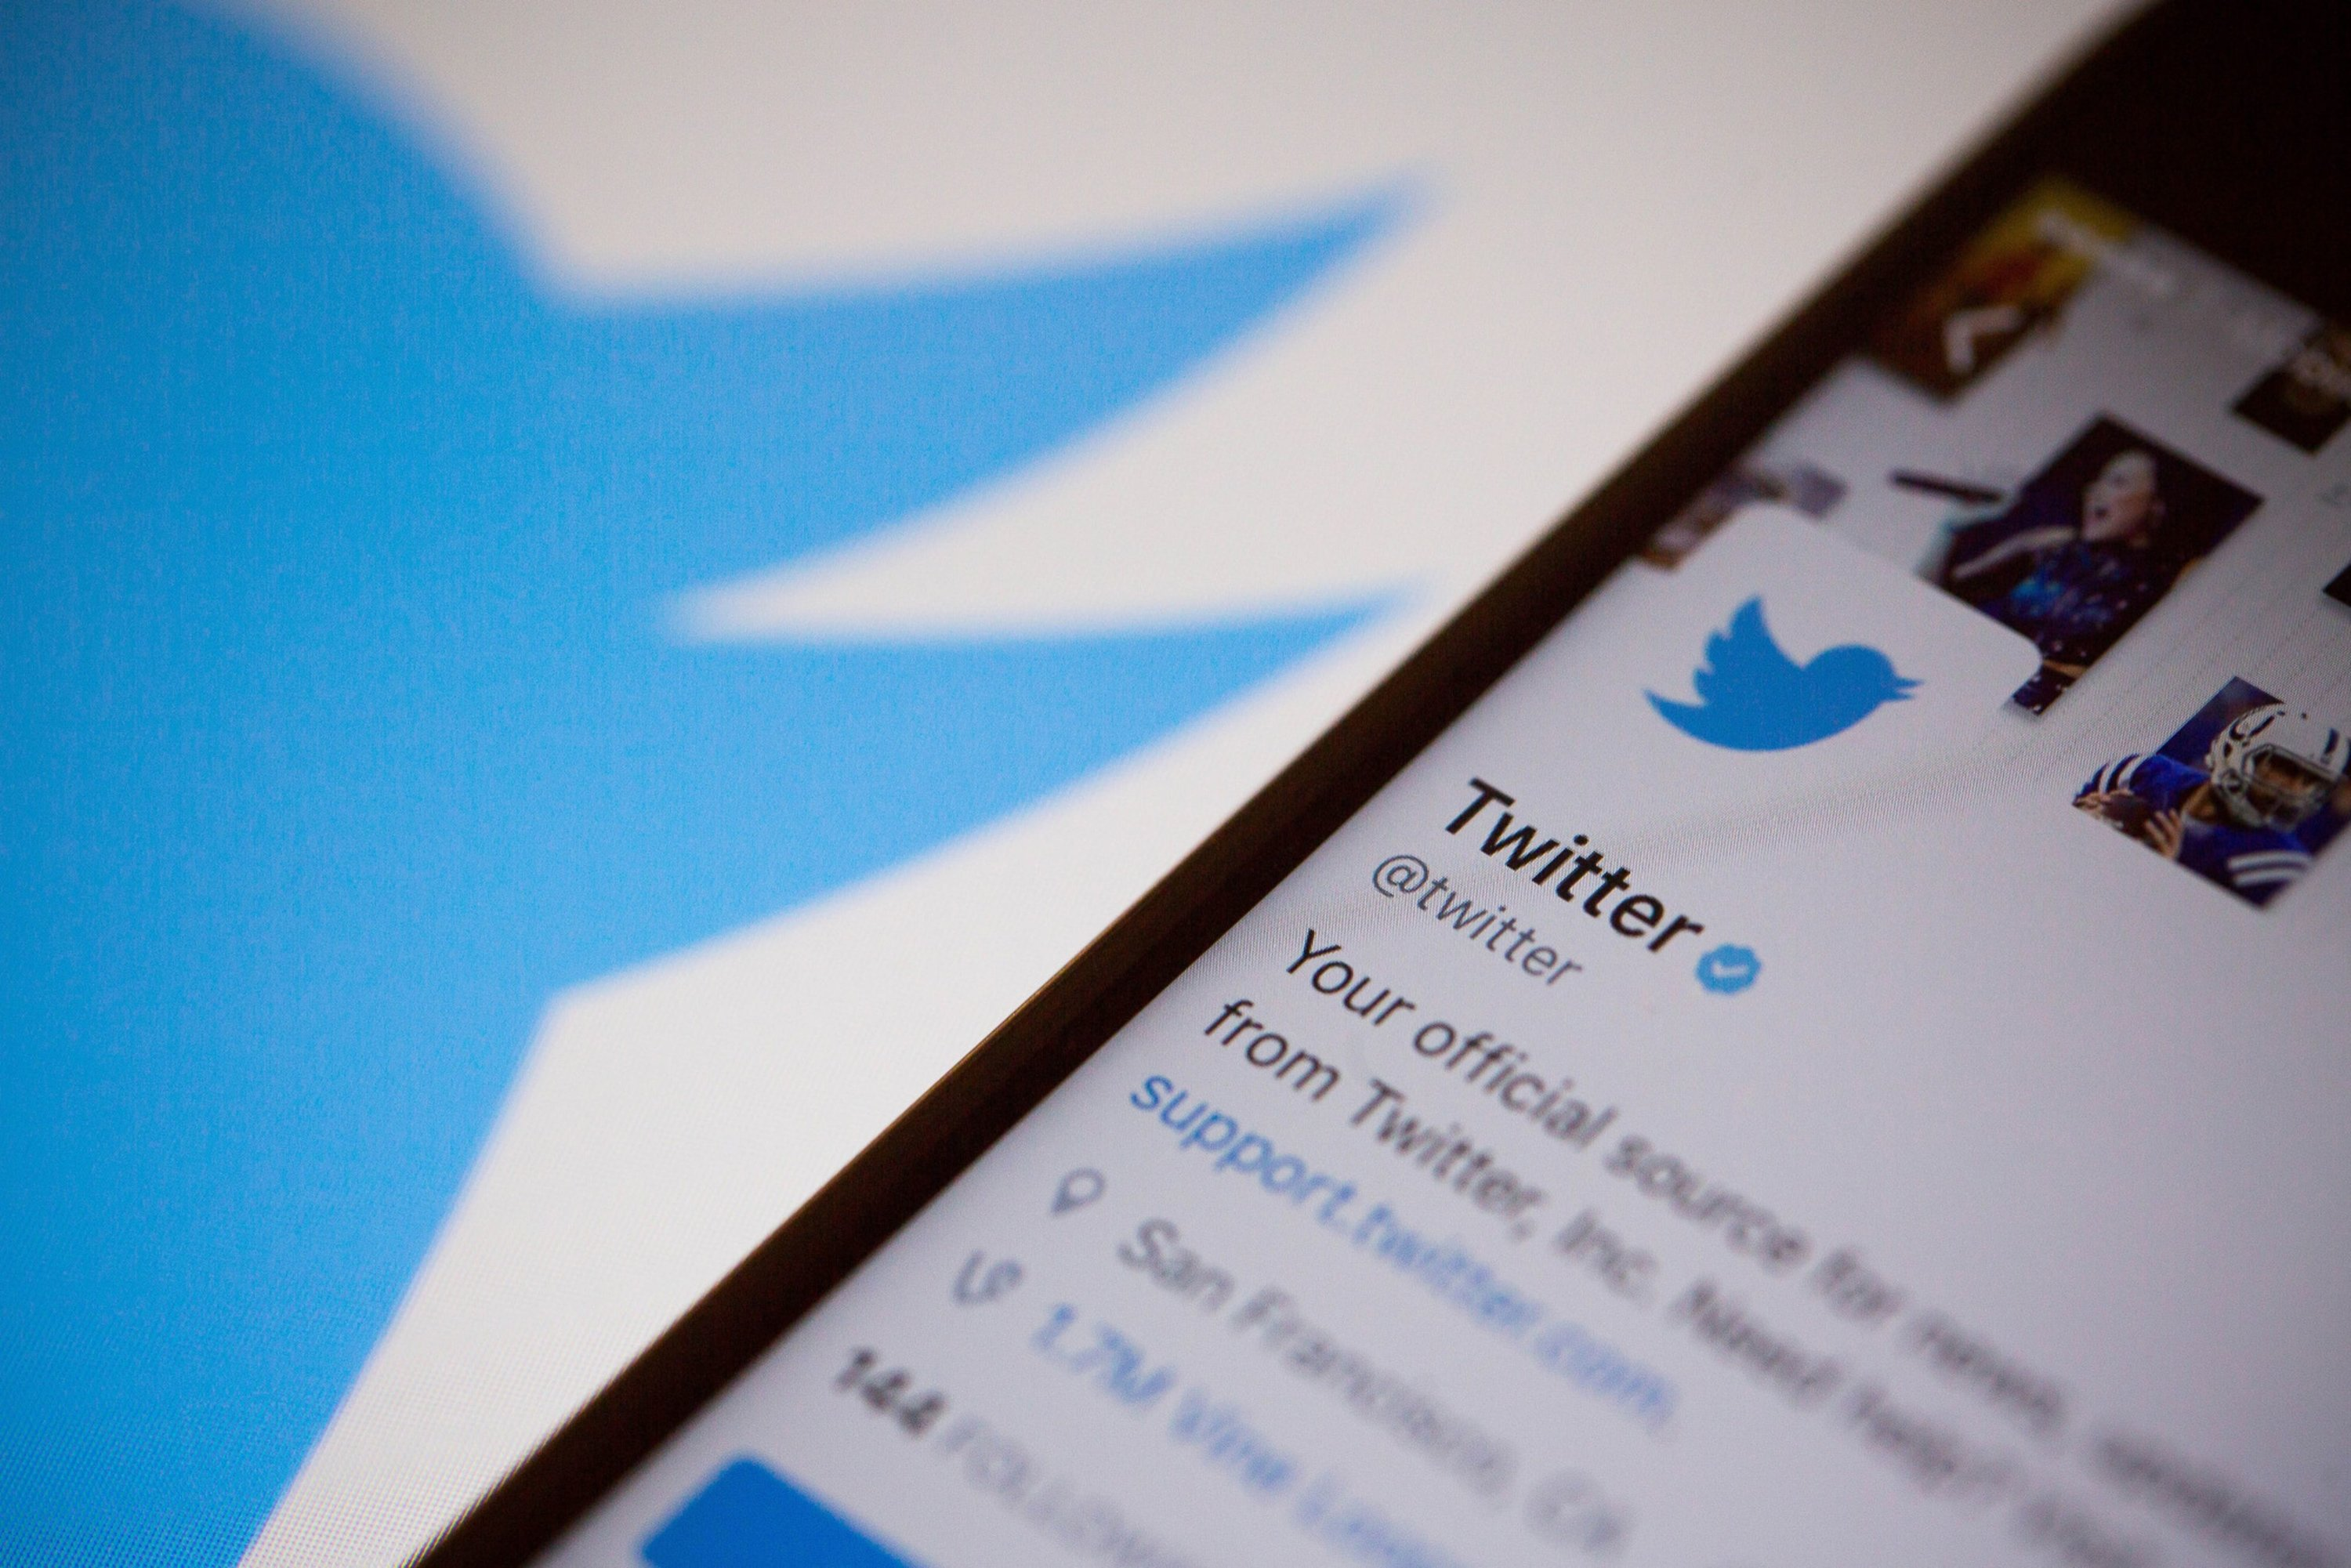 Twitter floats letting users charge followers for special access